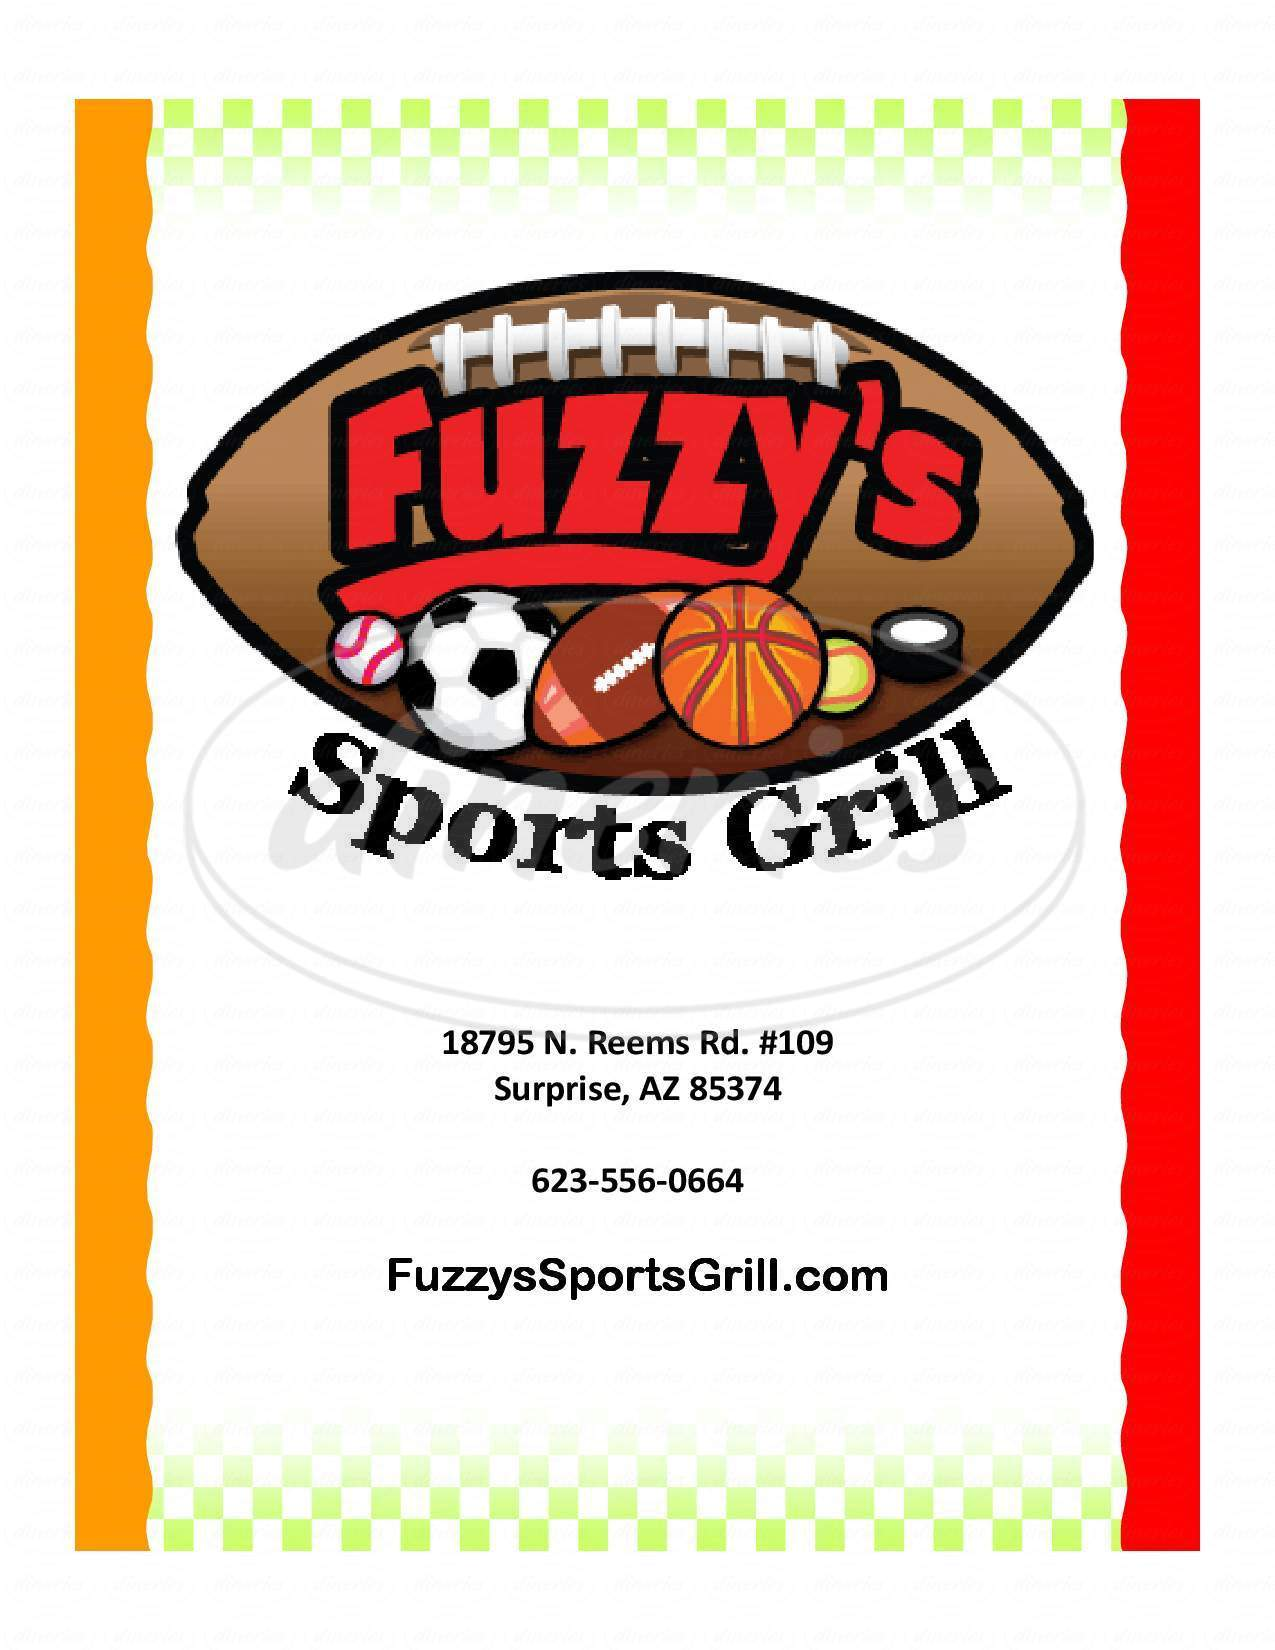 Big menu for Fuzzy's Southwest Sports Grill, Surprise